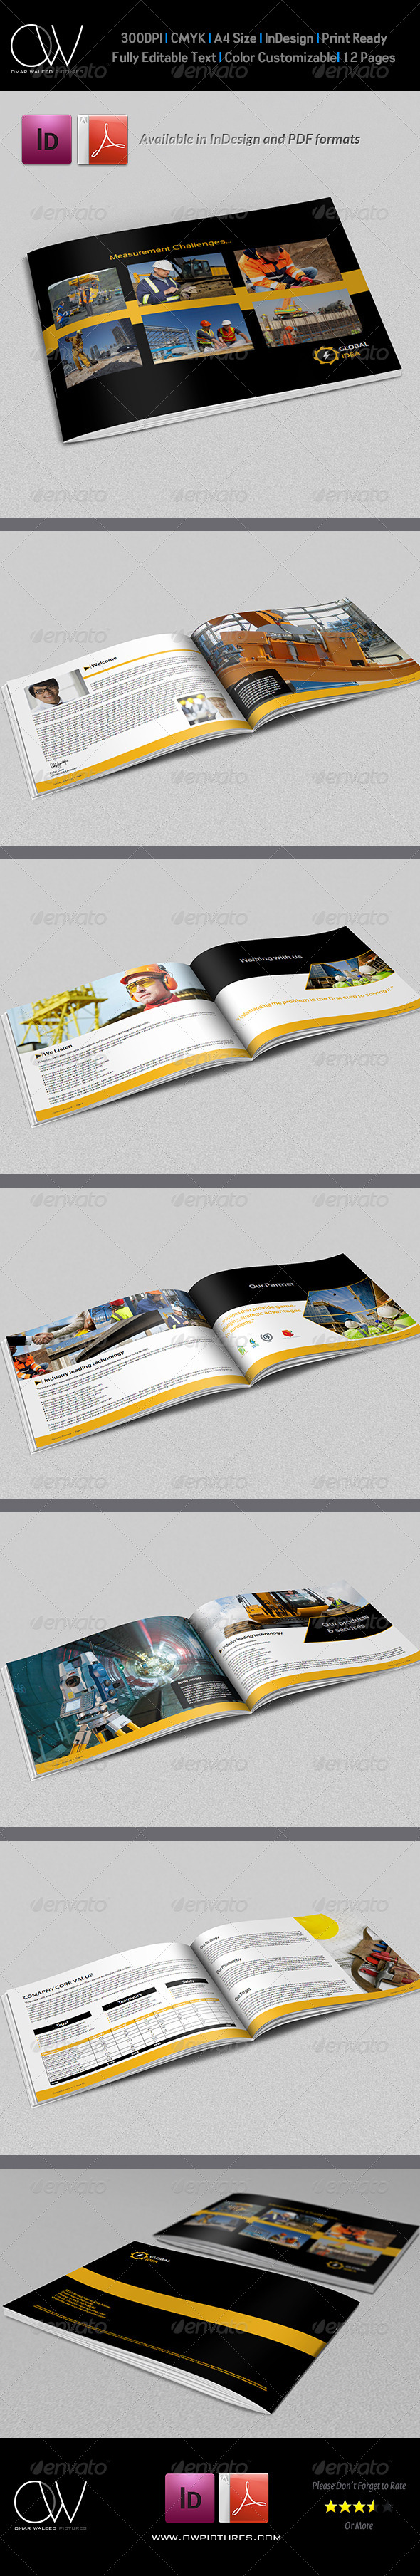 Construction Industry Brochure Template - 12 Pages - Corporate Brochures